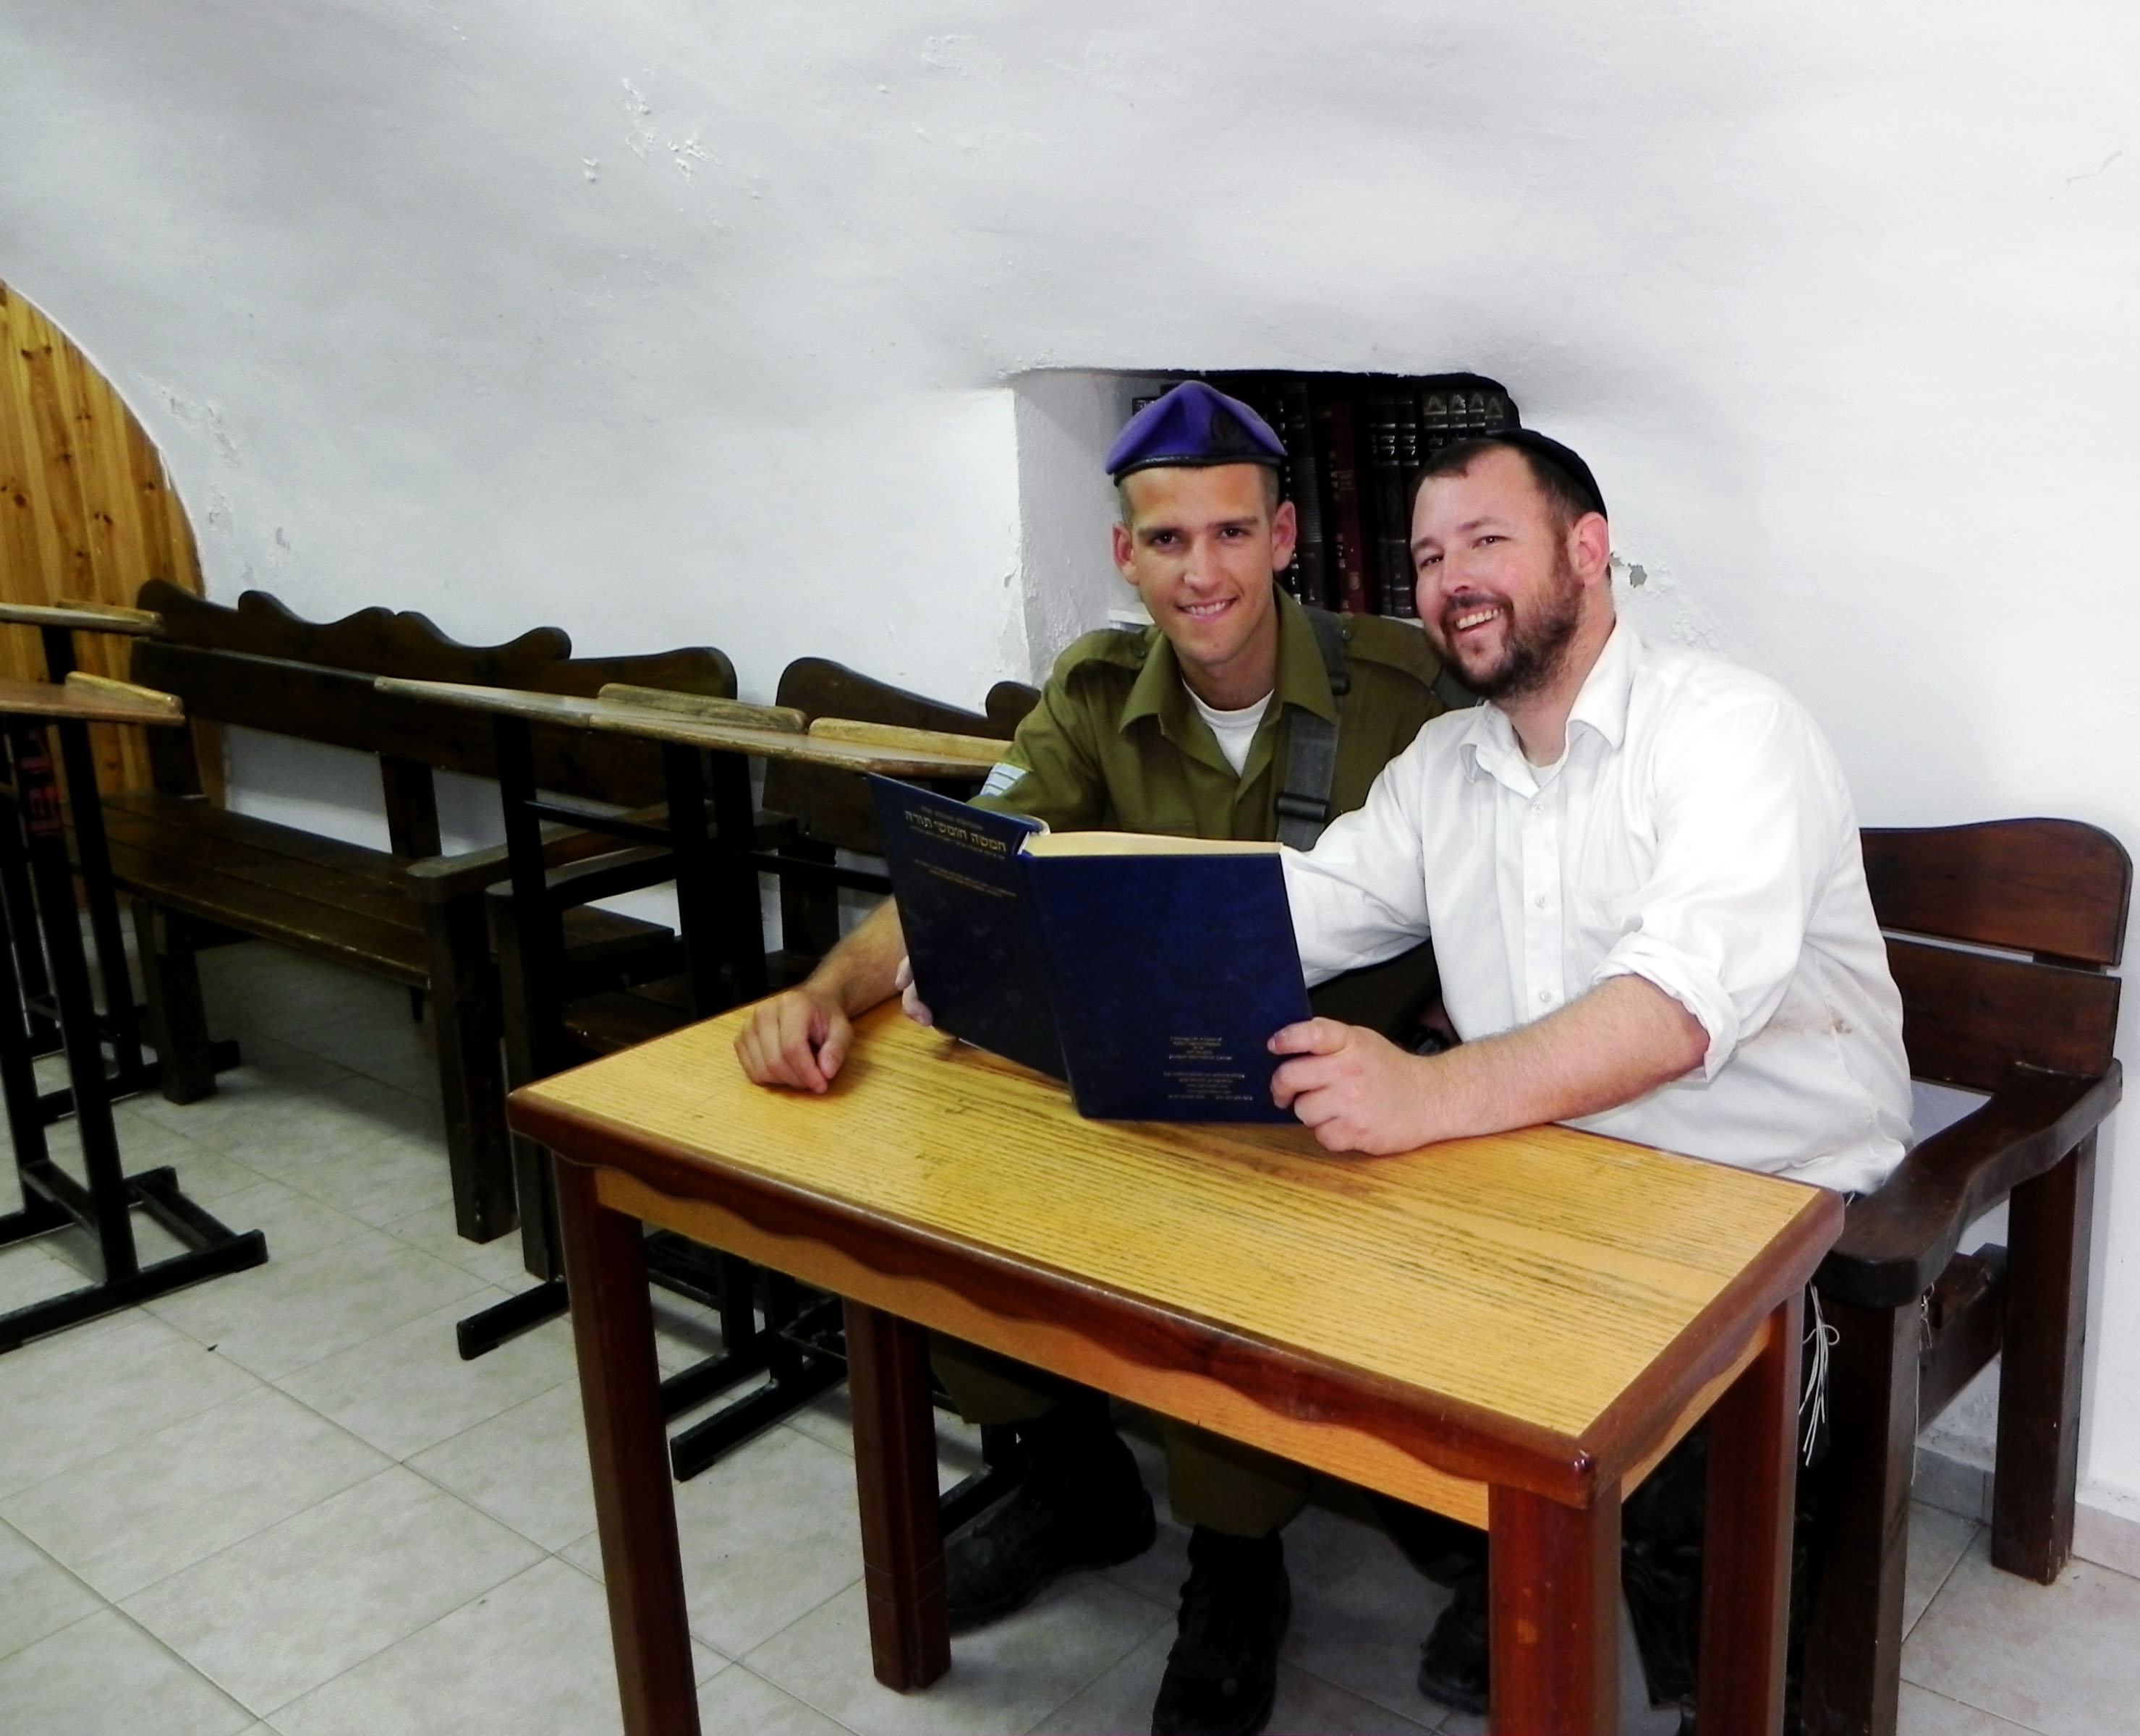 heritage house jeru m heritage house jeru m heritage rabbi ben packer jeru m heritage house director studying an asher david milstein artscroll chumash facilitated